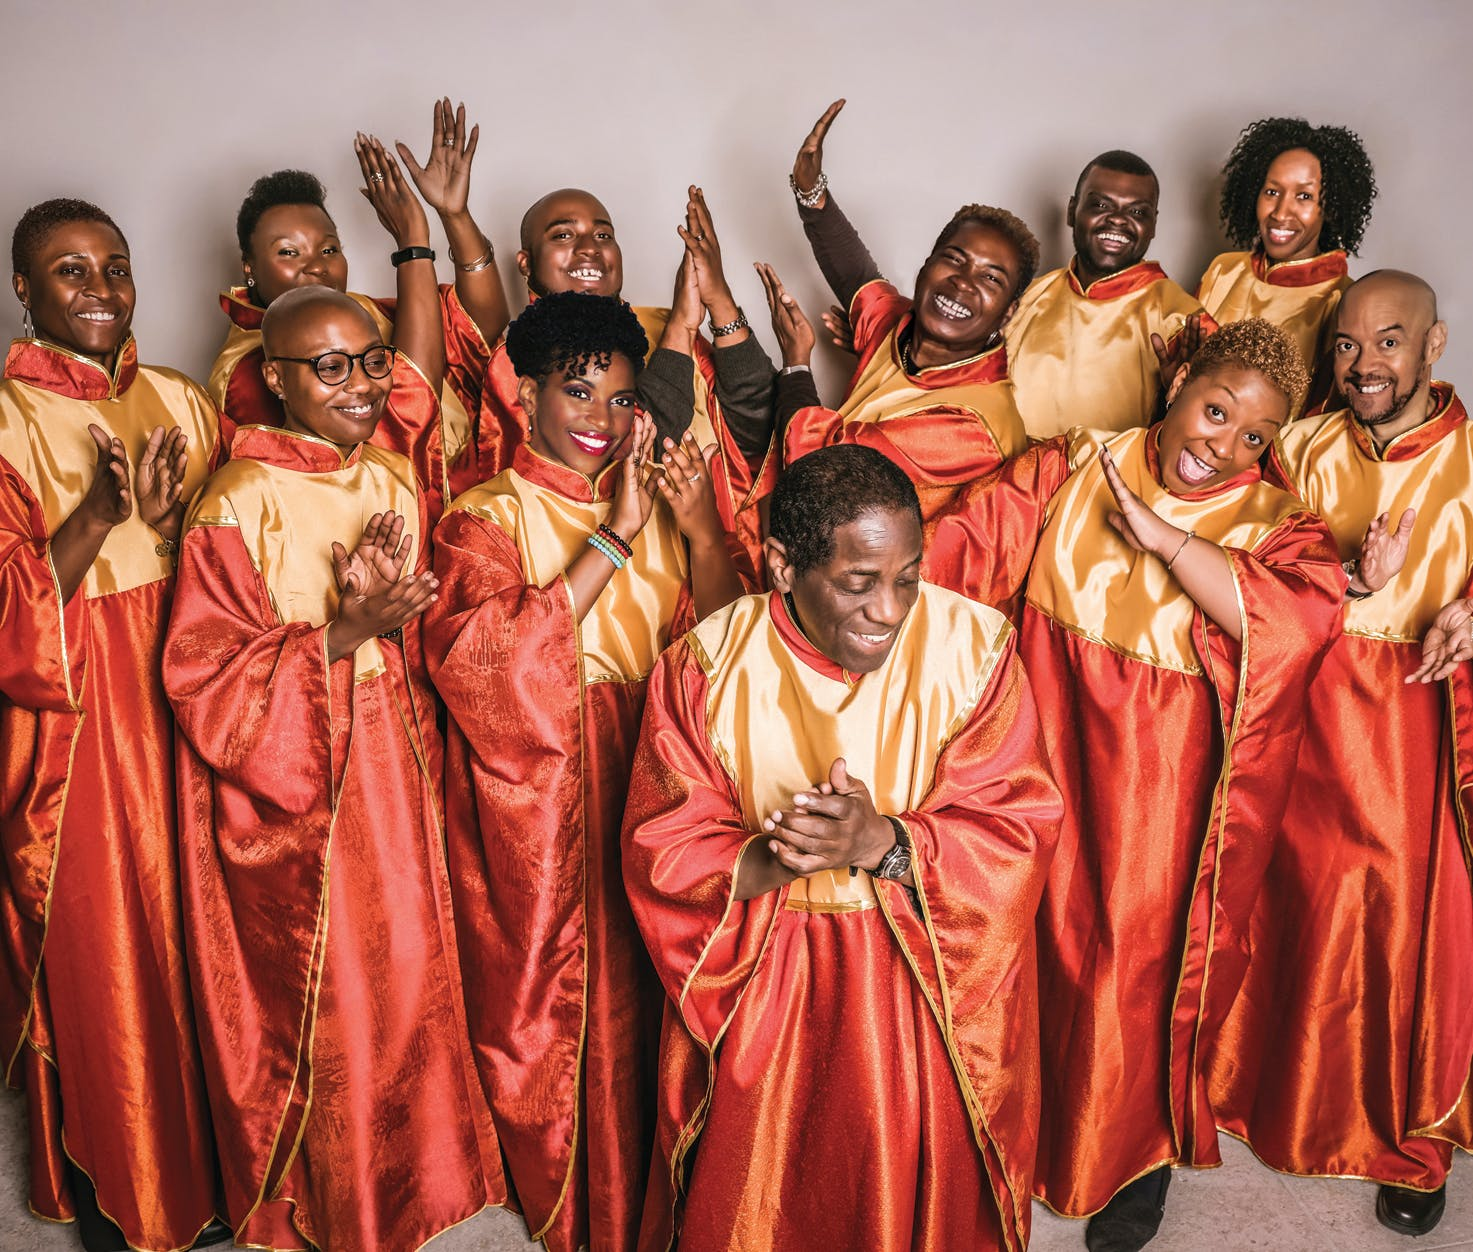 Die GOLDEN VOICES OF GOSPEL © Rene van der Voorden